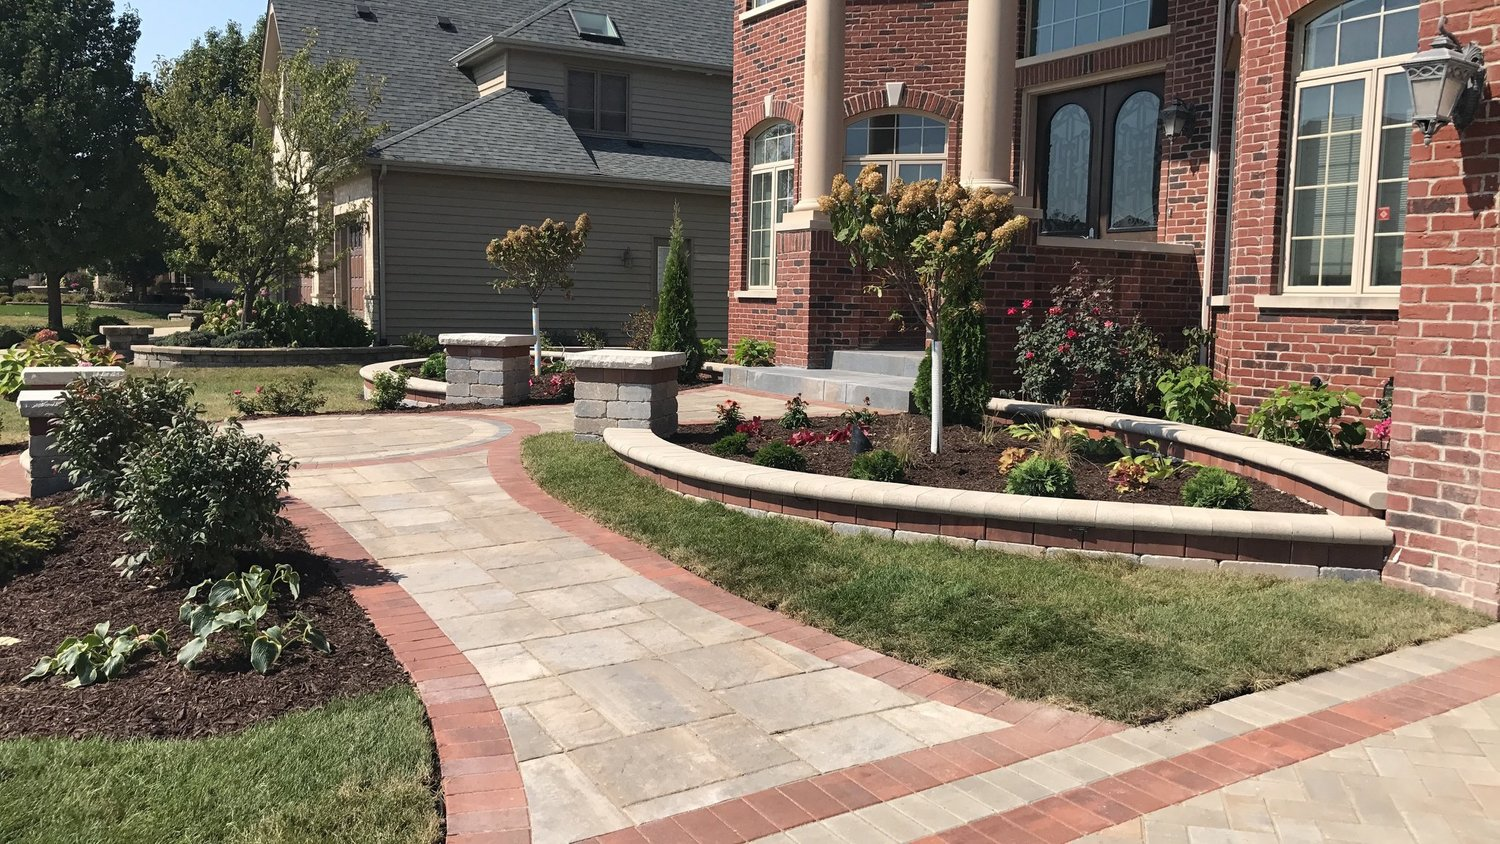 Gorgeous Brick Paving Ideas for Small Yards in Elmhurst, IL